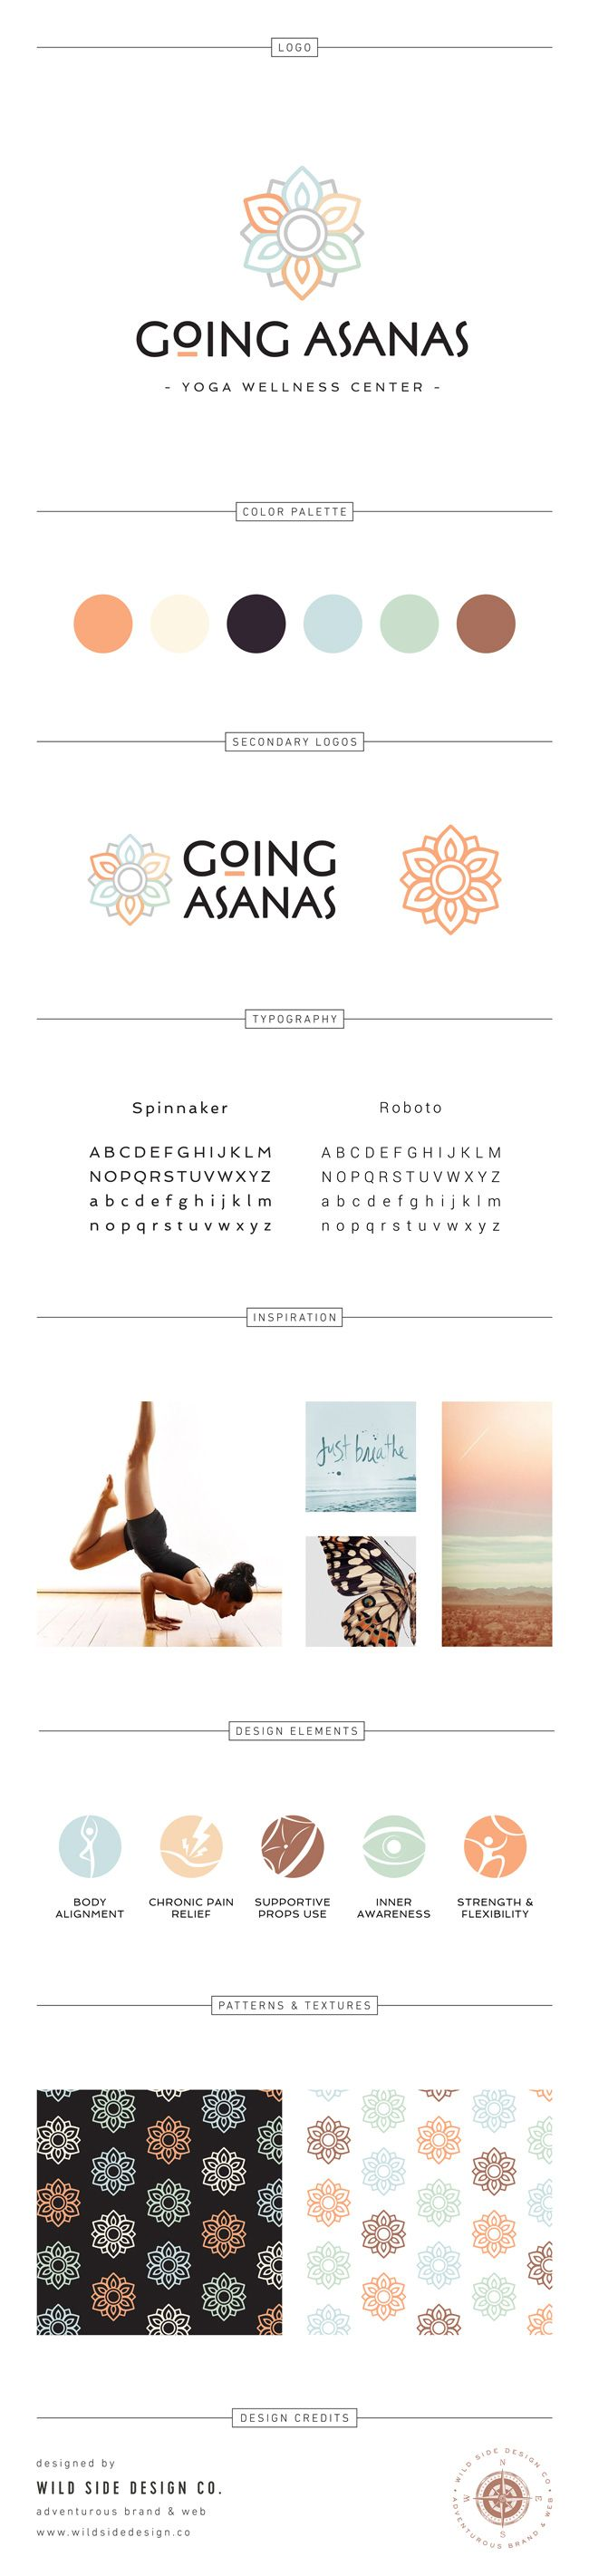 Brand Launch :: Brand Style Board :: Modern  Yoga Studio Branding :: Going Asanas Design :: #brandboard by Wild Side Design Co. - www.wildsidedesign.co http://amzn.to/2tmssiM